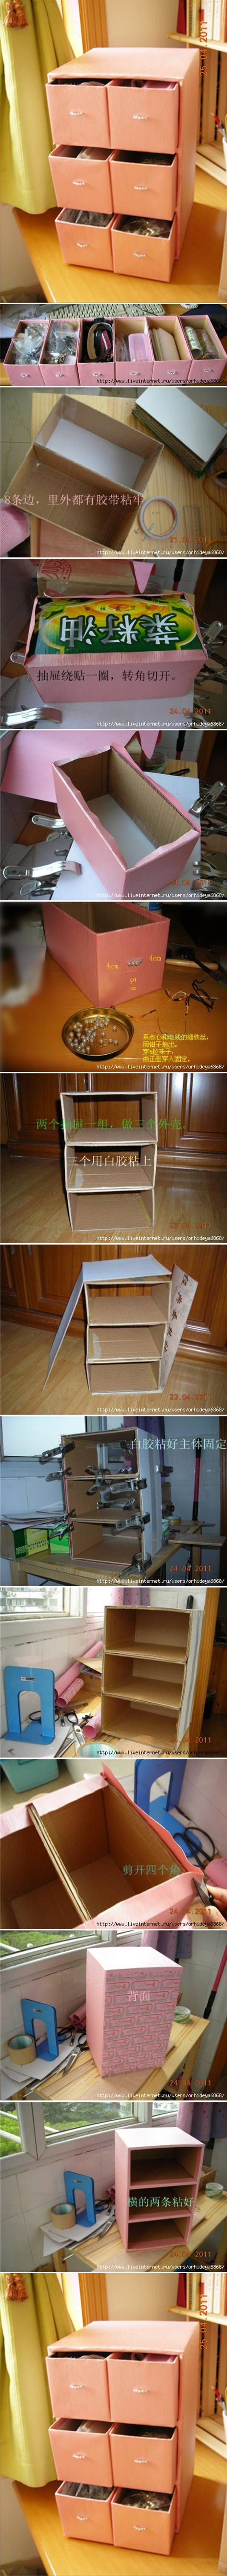 "<input+type=""hidden""+value=""""+data-frizzlyPostContainer=""""+data-frizzlyPostUrl=""http://www.usefuldiy.com/diy-small-cardboard-chest/""+data-frizzlyPostTitle=""DIY+Small+Cardboard+Chest""+data-frizzlyHoverContainer=""""><p>>>>+Craft+Tutorials+More+Free+Instructions+Free+Tutorials+More+Craft+Tutorials</p>"